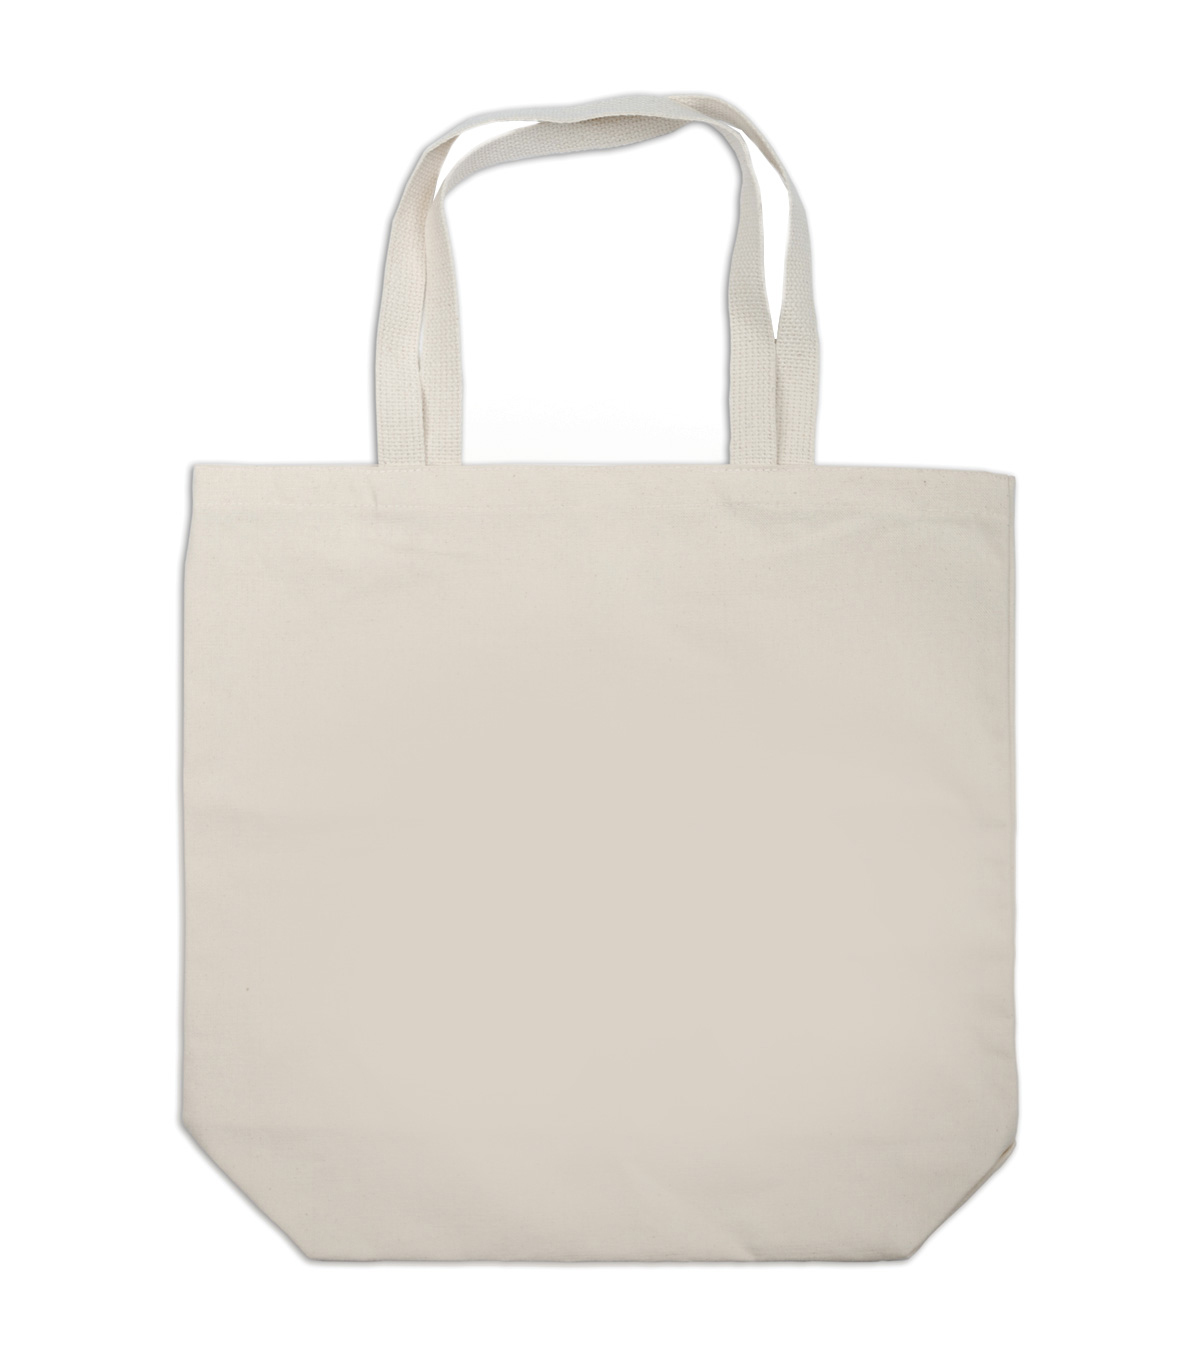 Canvas Large Tote Bag 17 U0022x5 25 U0022x16 5 Natural